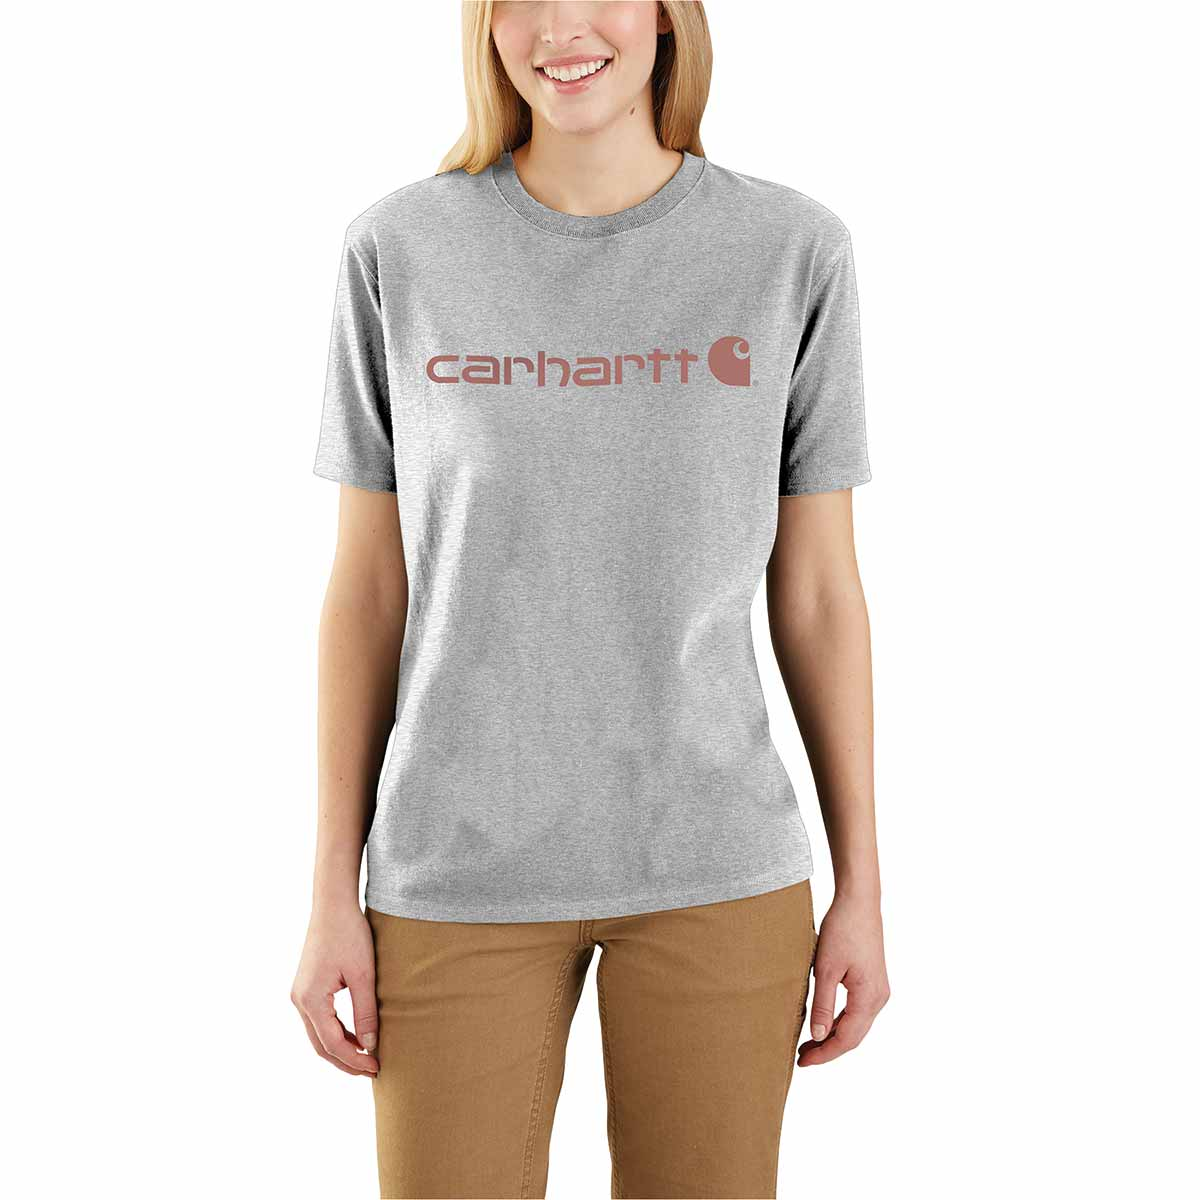 Carhartt Women's Workwear Logo Short Sleeve T-Shirt